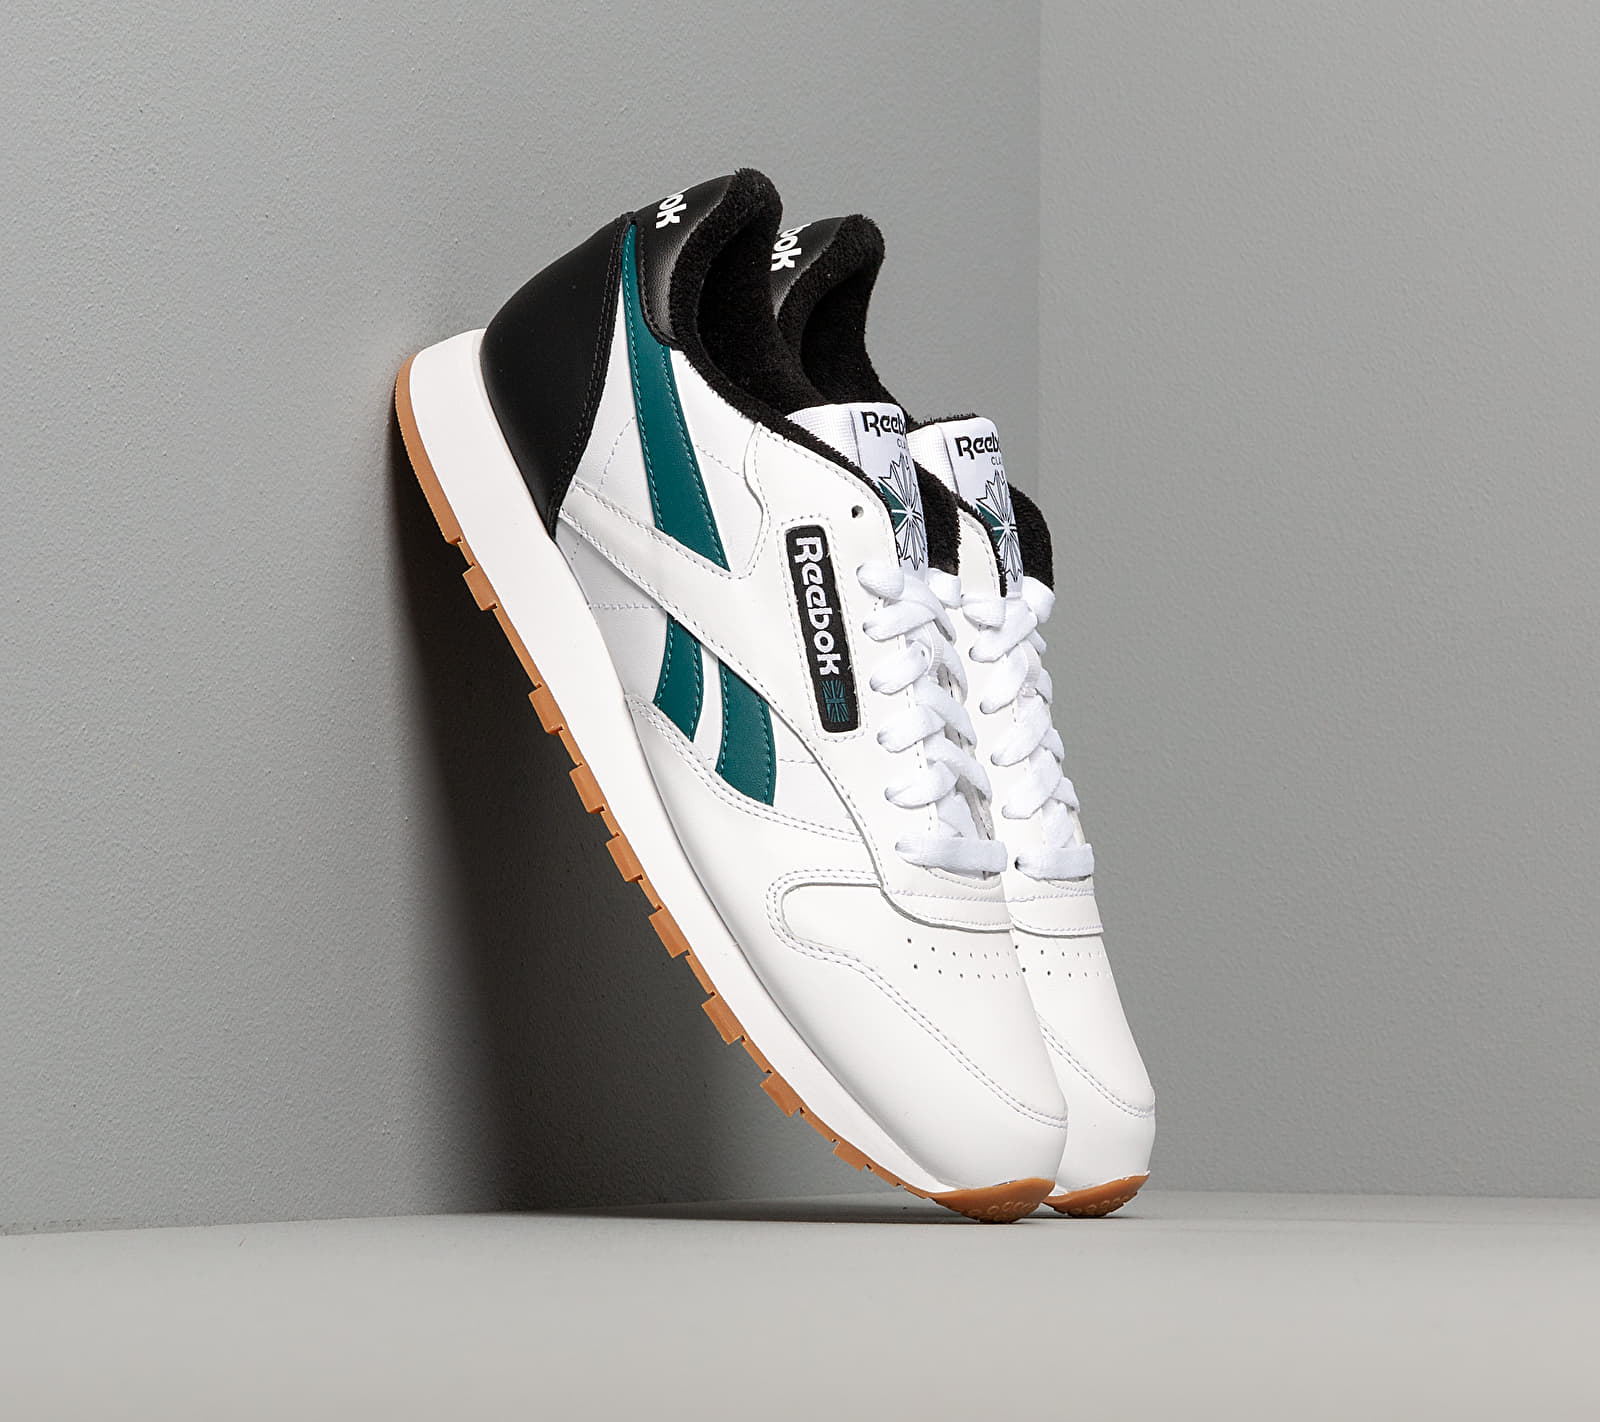 Reebok Classic Leather MU White/ Black/ Heritage Teal EUR 42.5